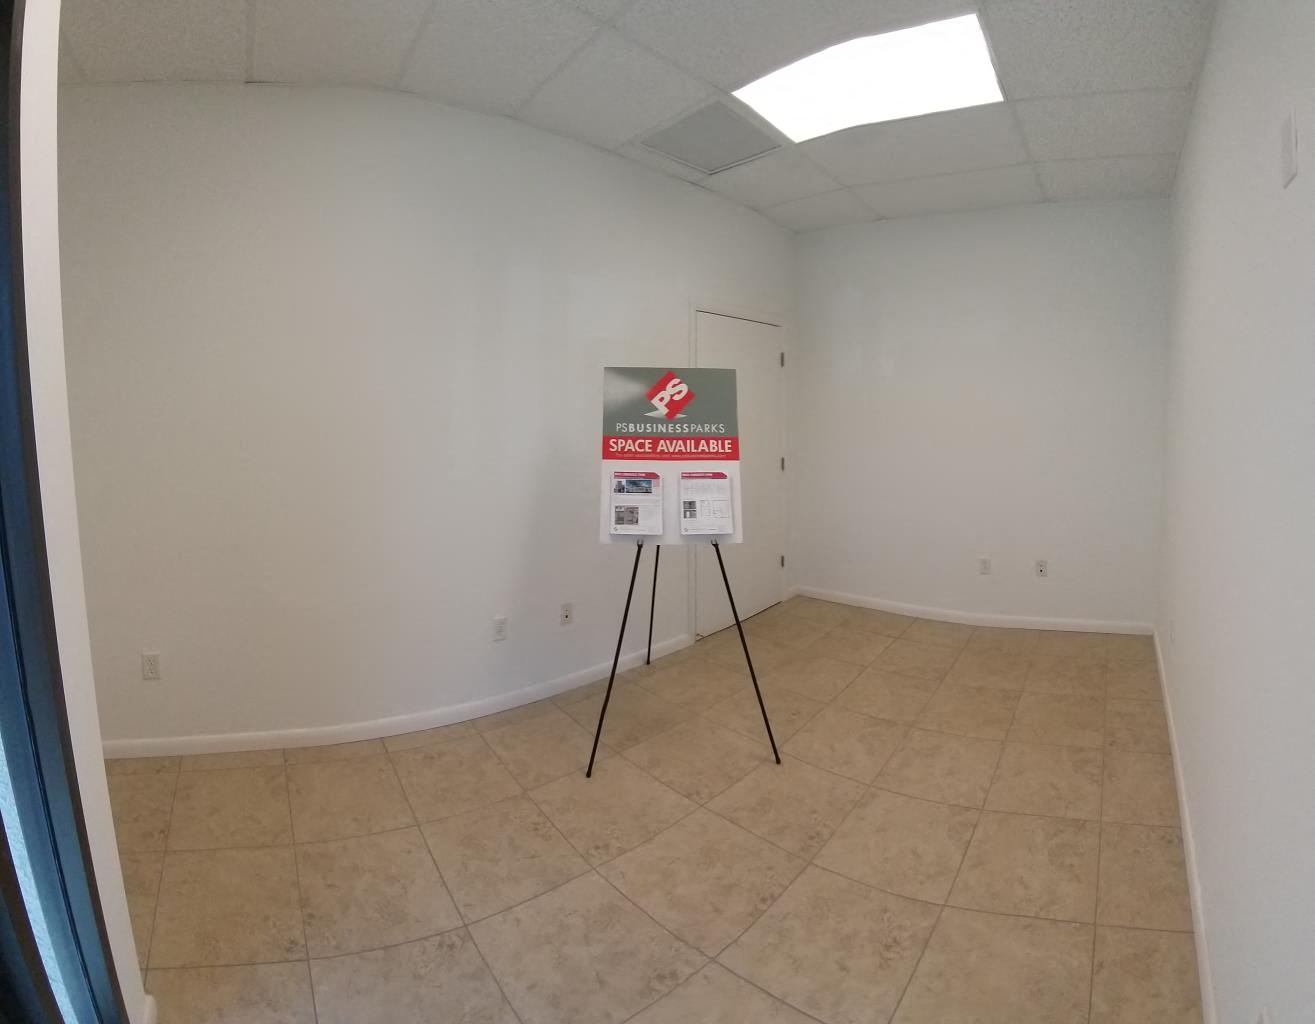 662 SF Warehouse with Office